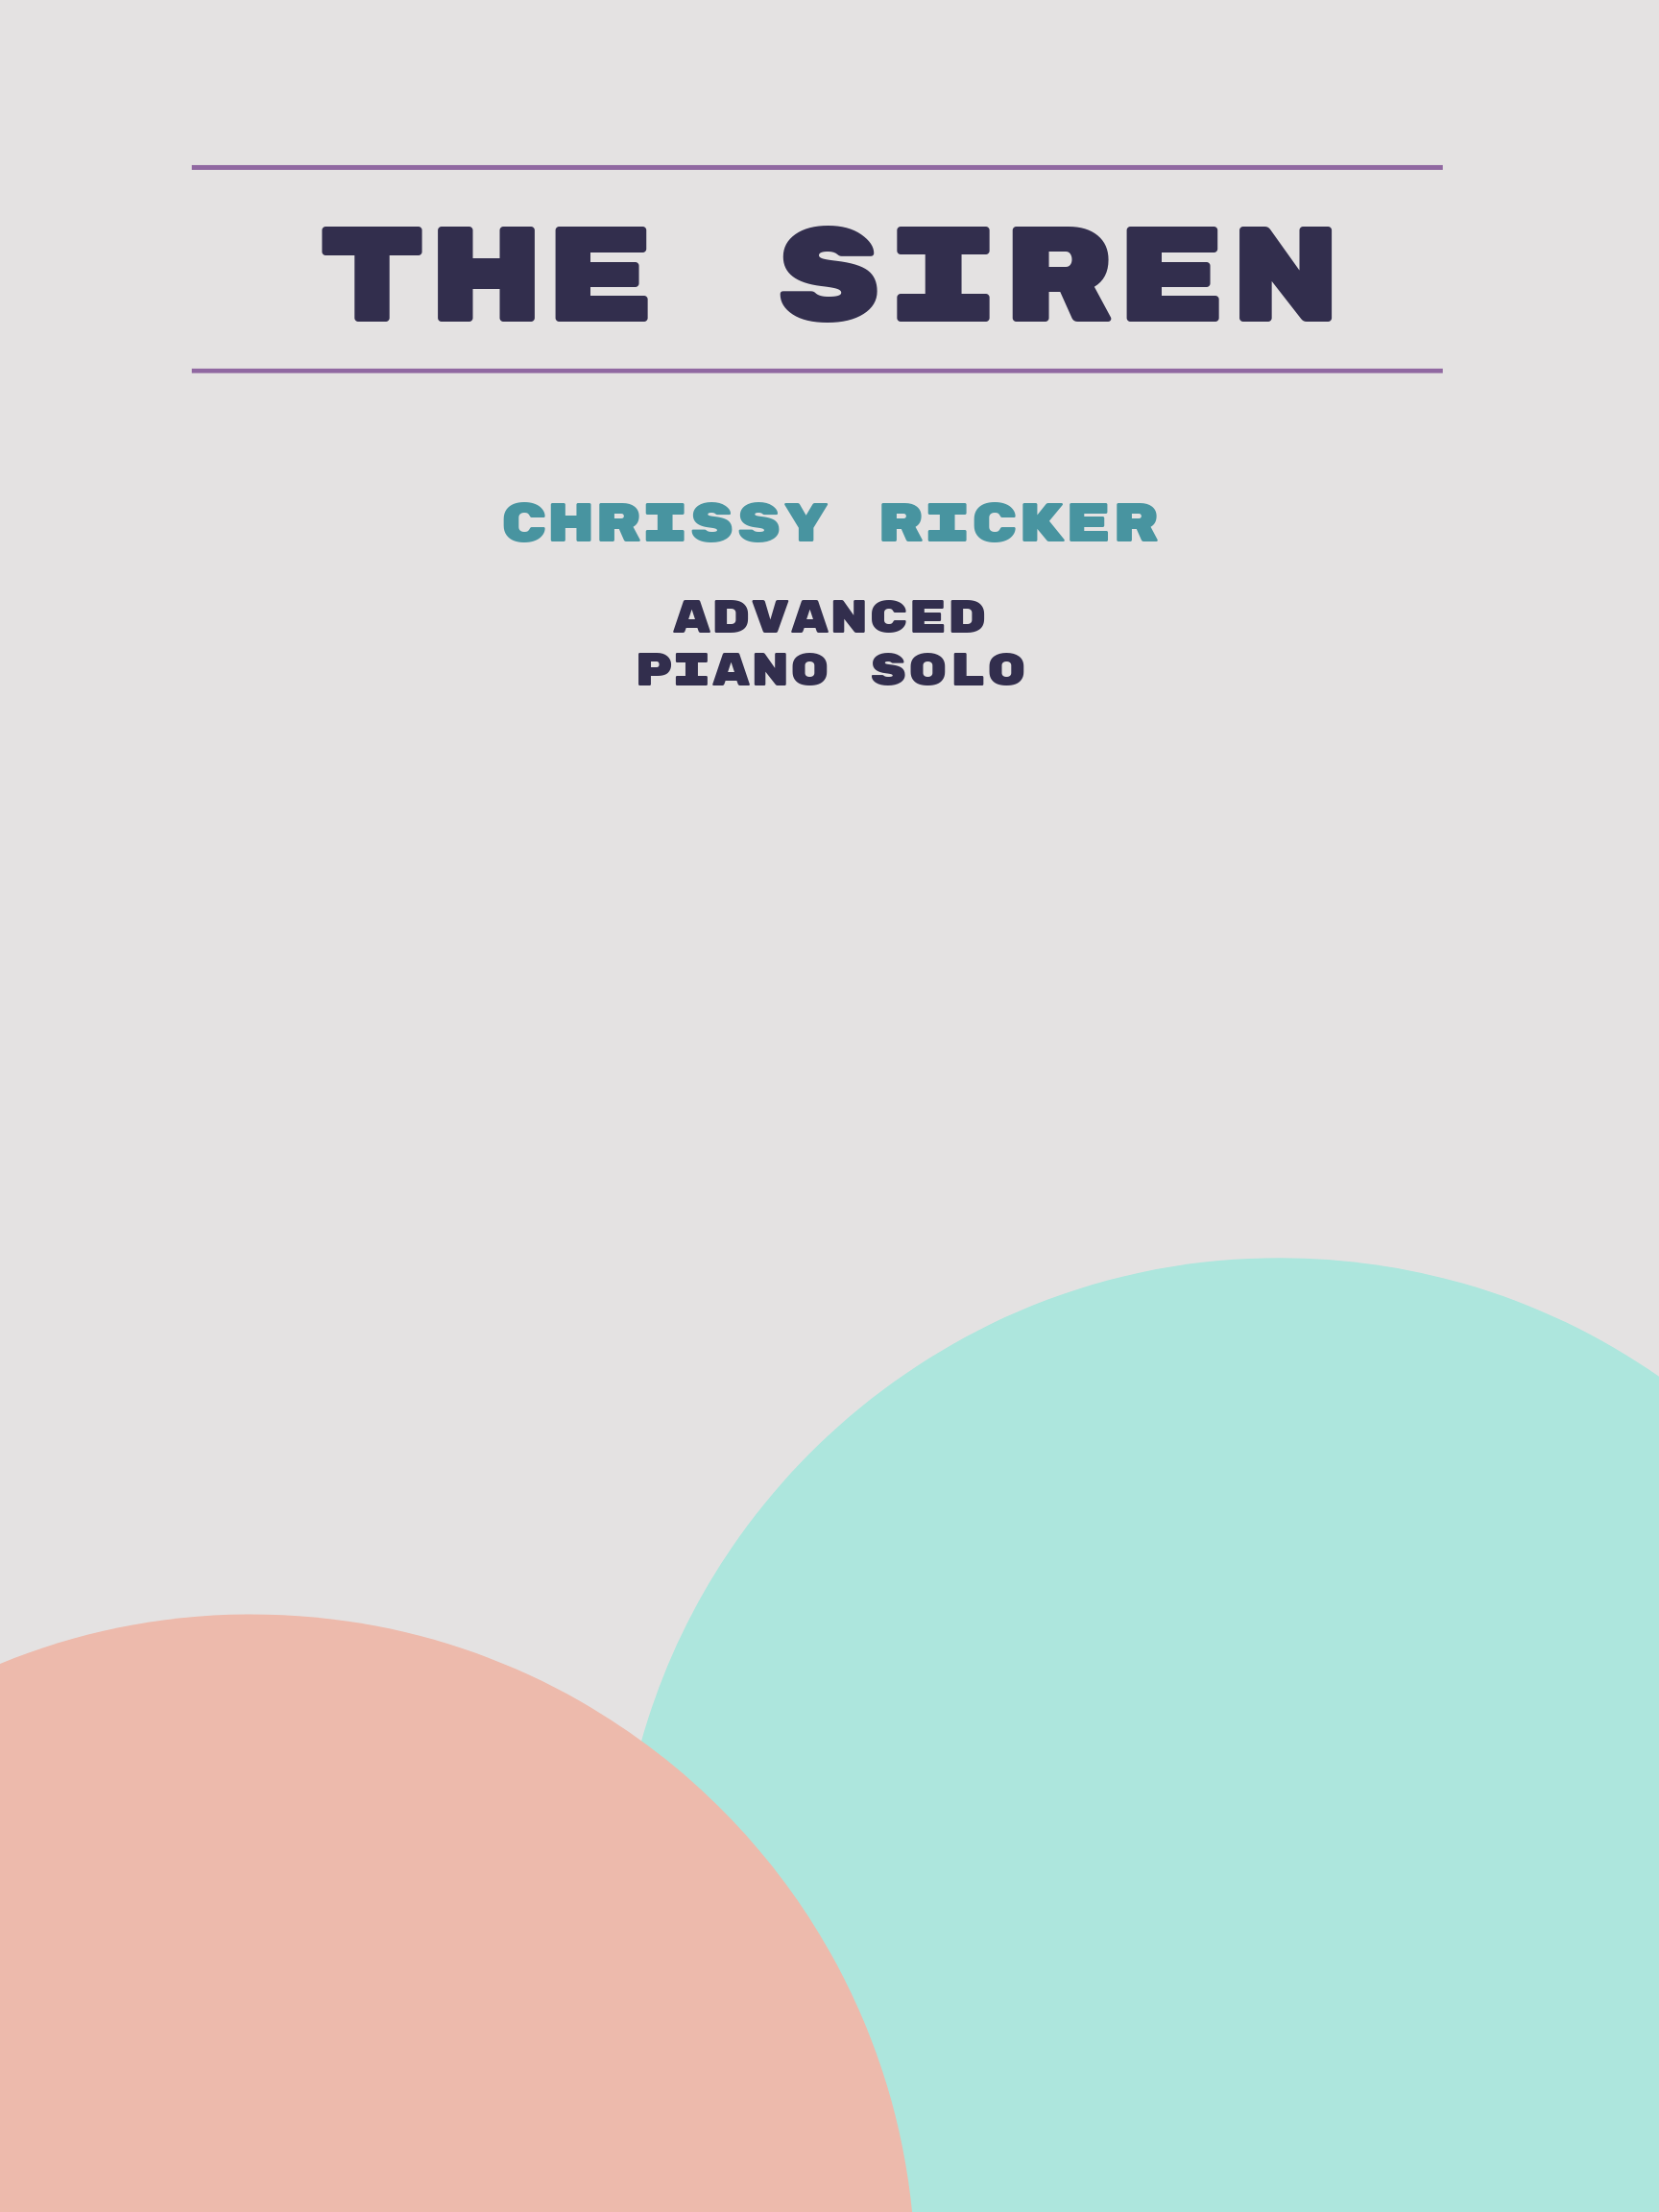 The Siren by Chrissy Ricker